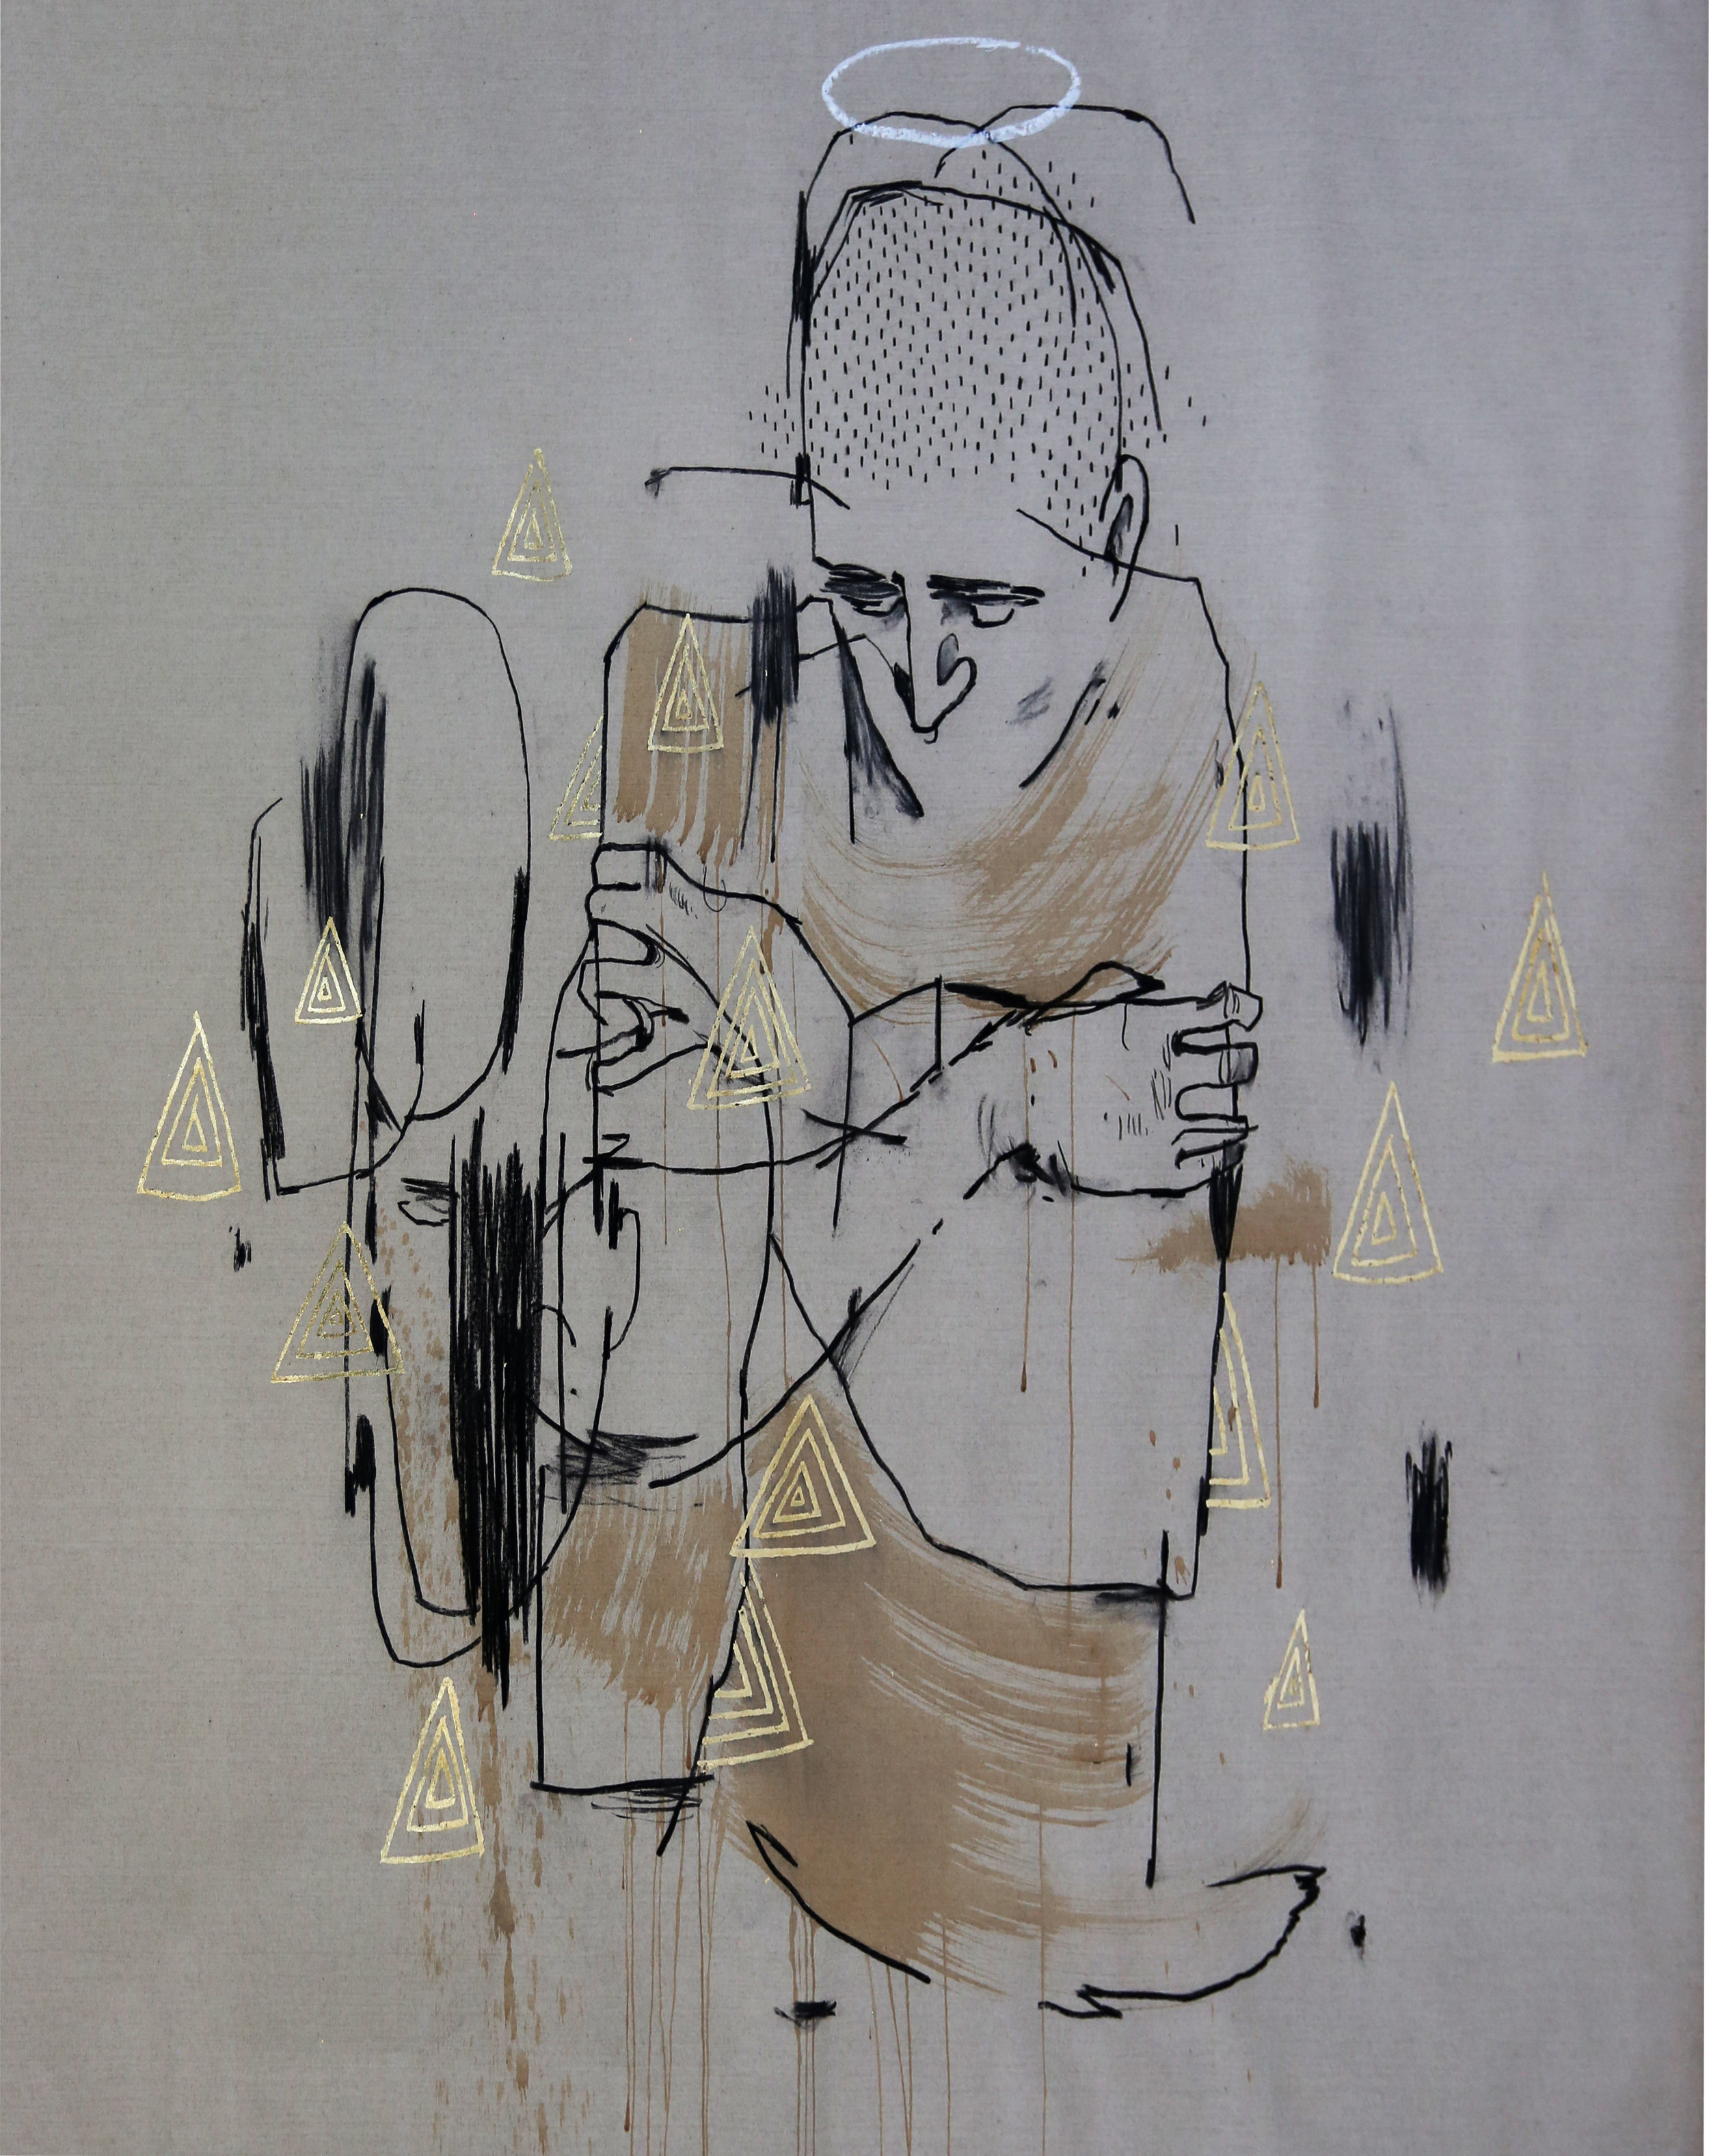 Word to Mother_Law of Attraction_Charcoal GoldLeaf OilBar TeaStain on RawLinen_150x150cm_2016.jpg